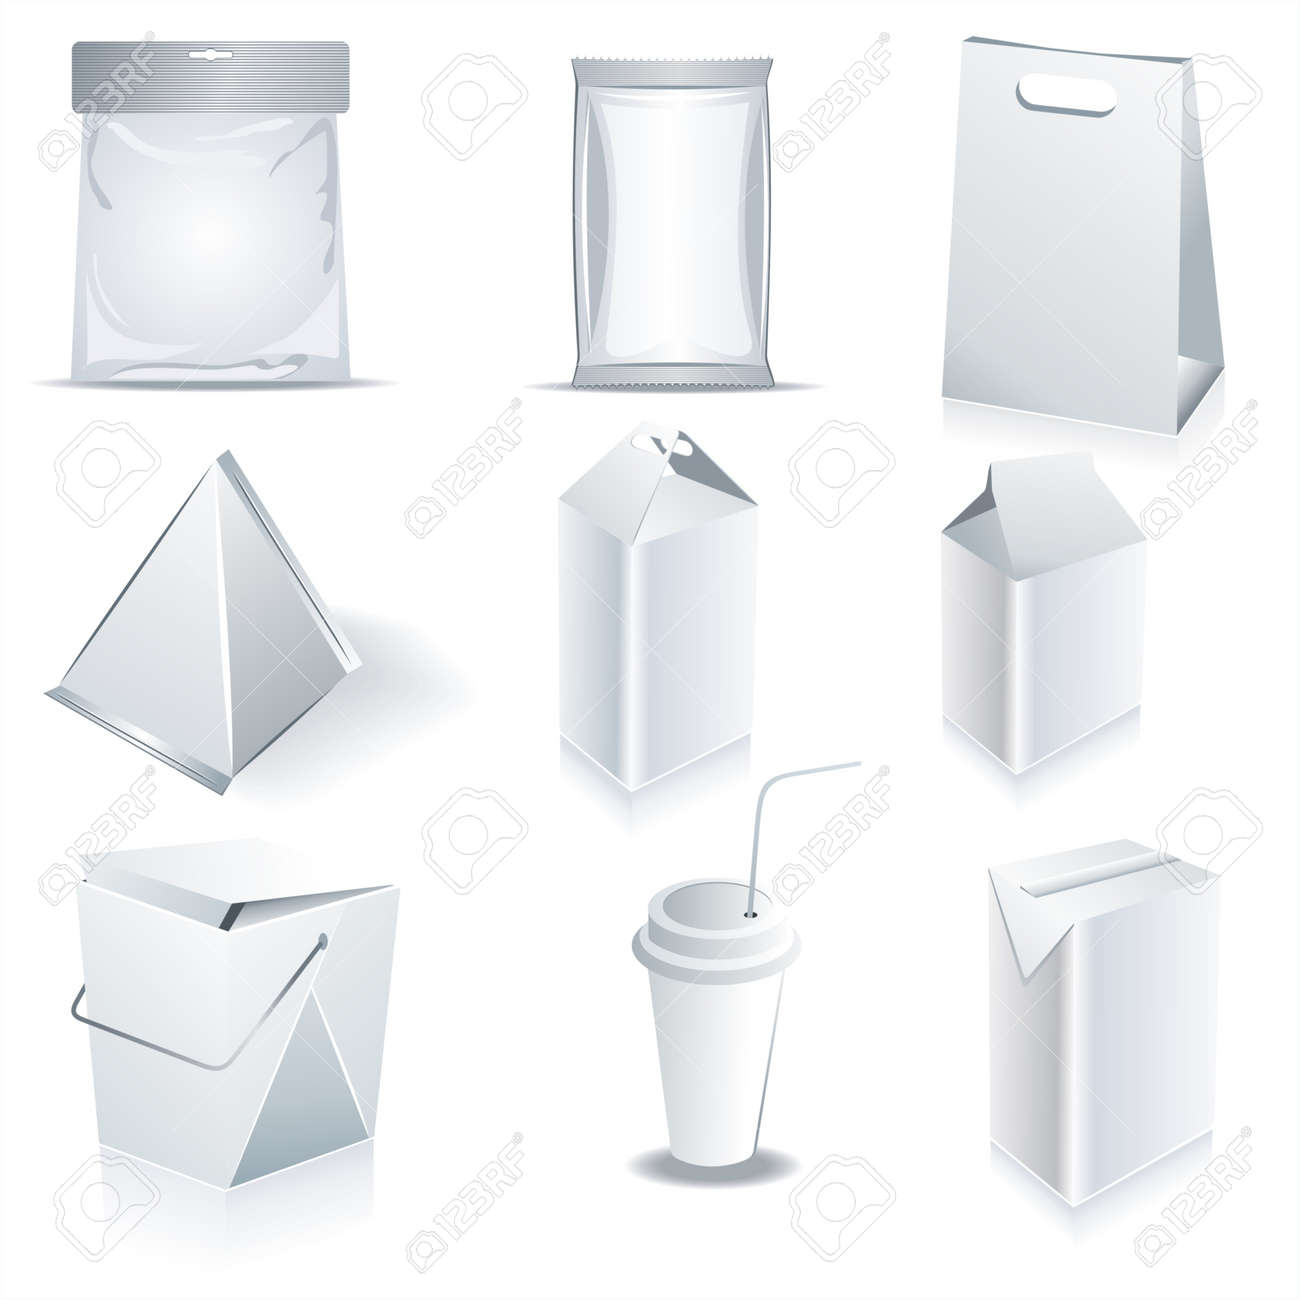 White Package Templates Royalty Free Cliparts, Vectors, And Stock ...